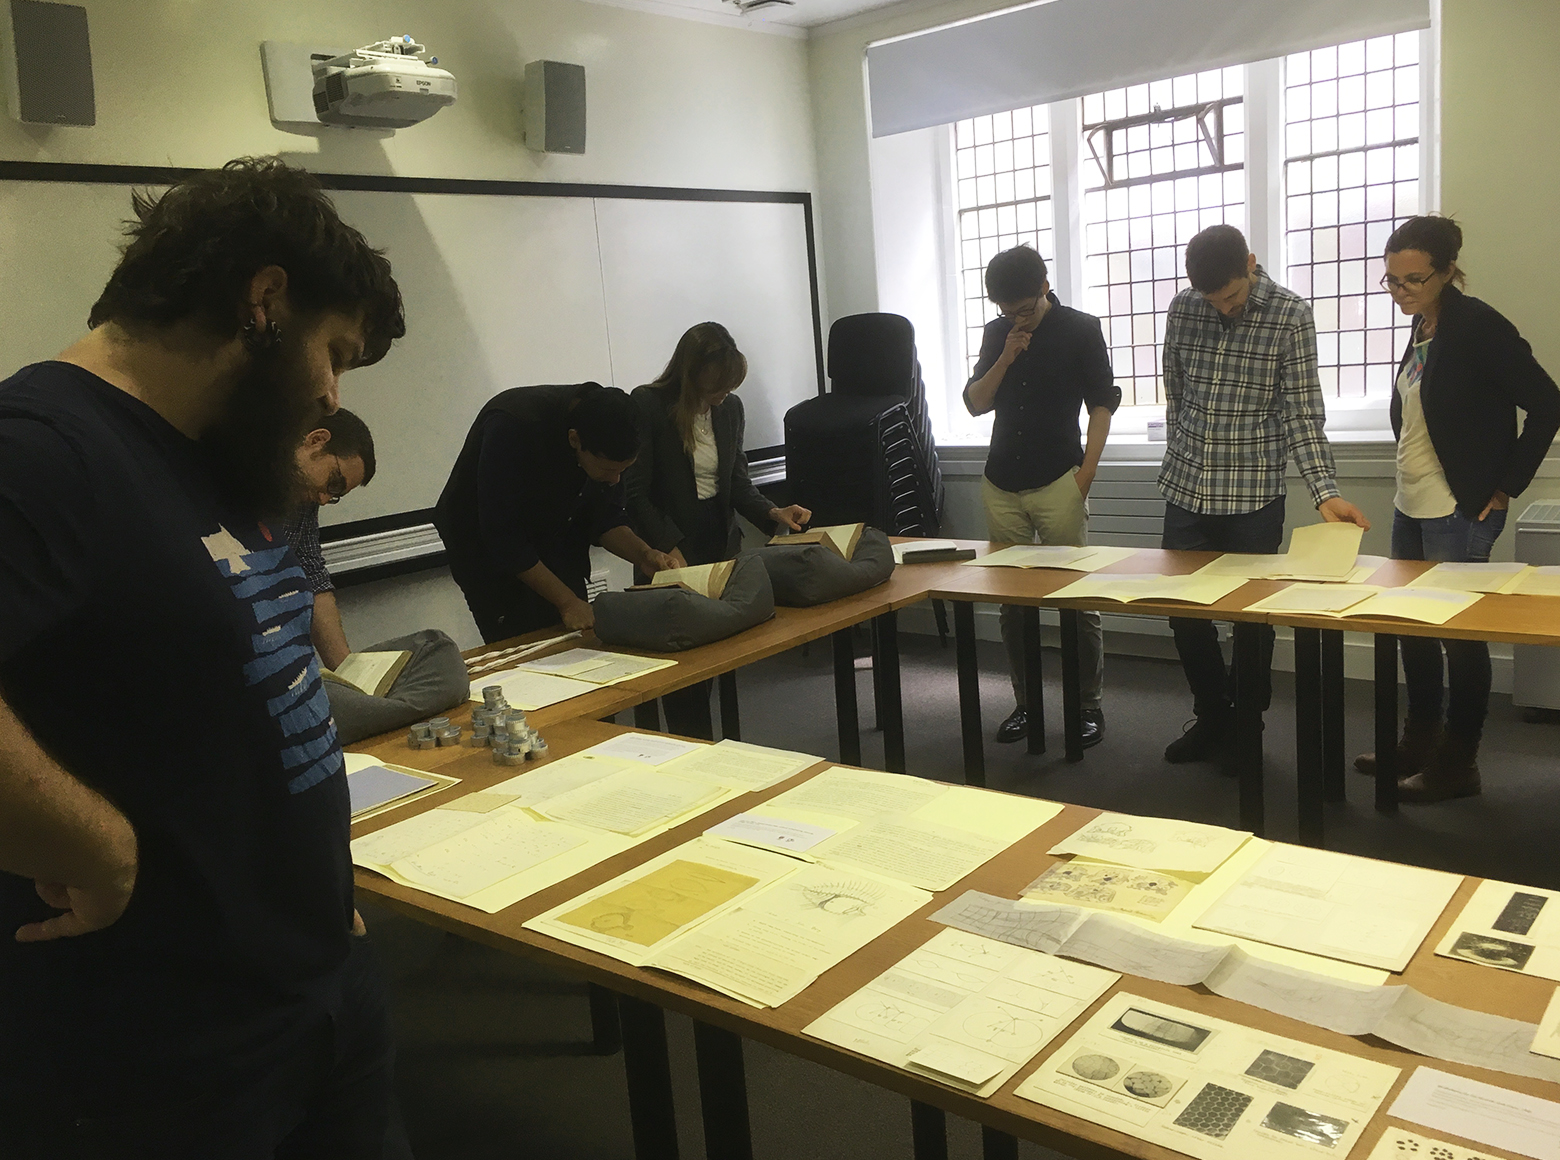 Workshop attendees looking at archive material displayed on tables